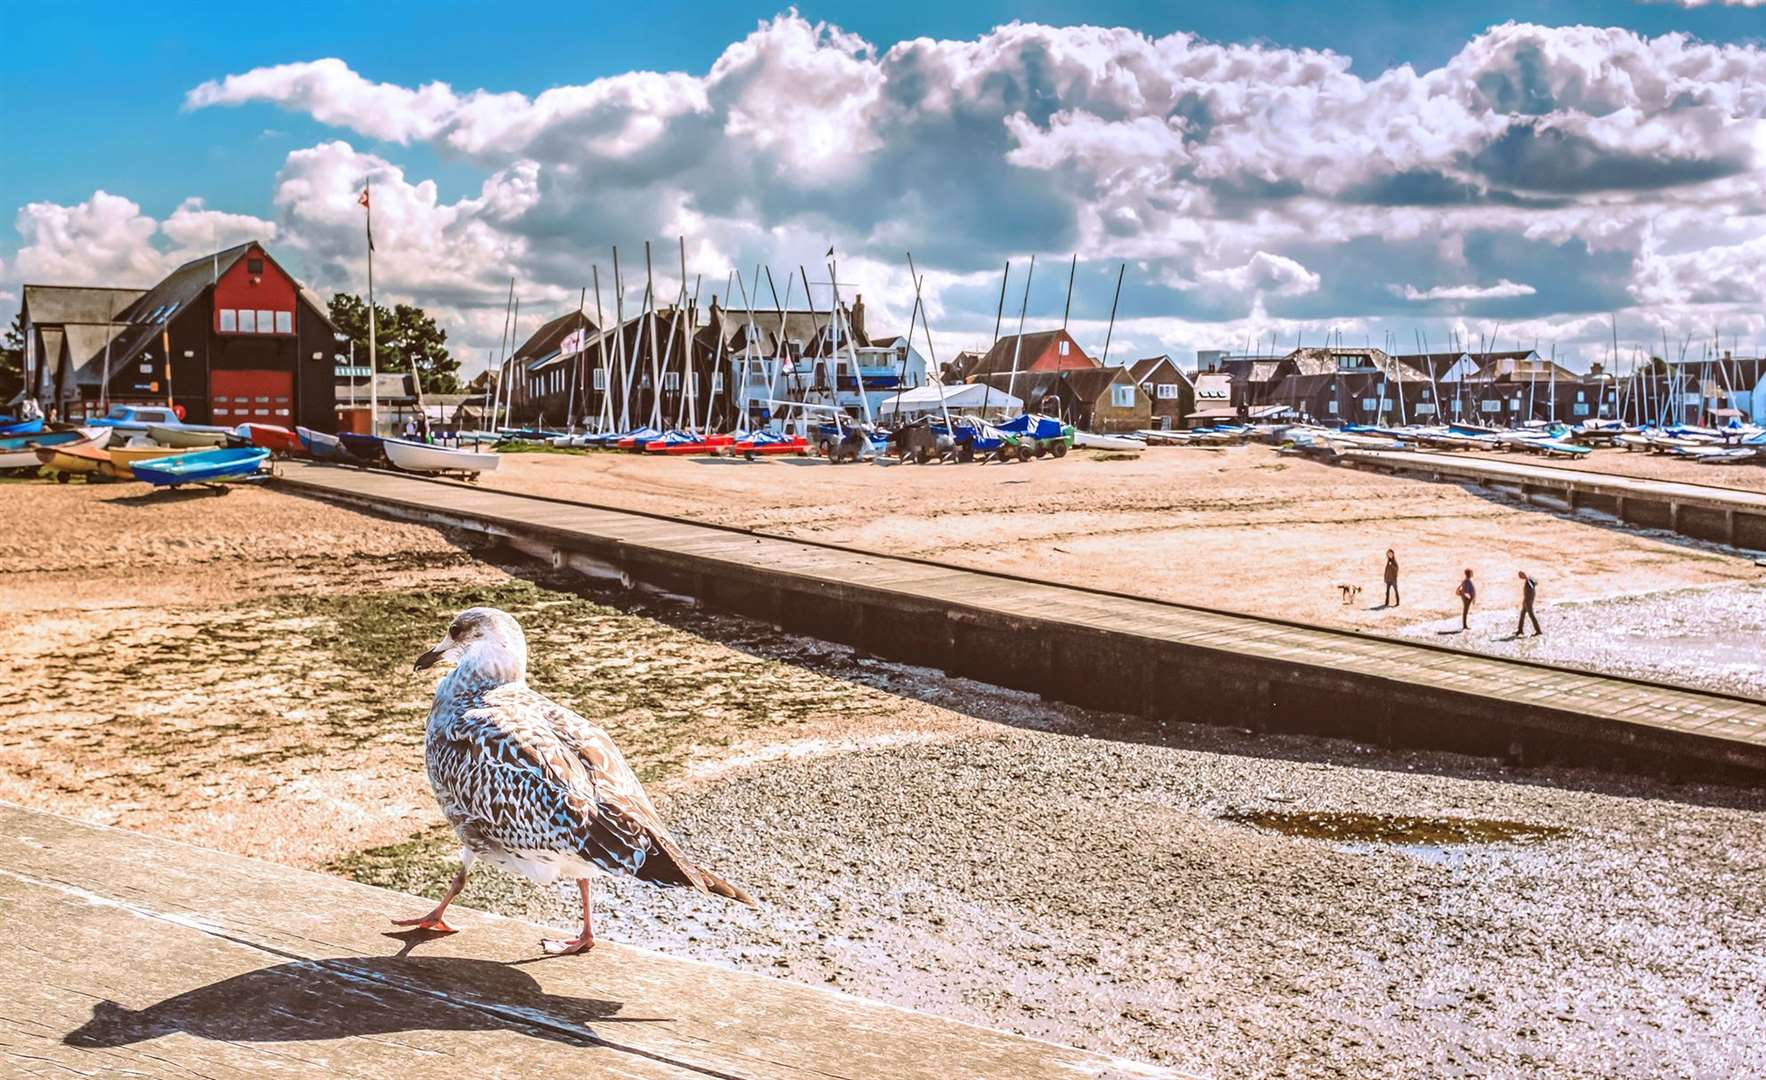 Head to Whitstable for Oyster Festival fun this weekend